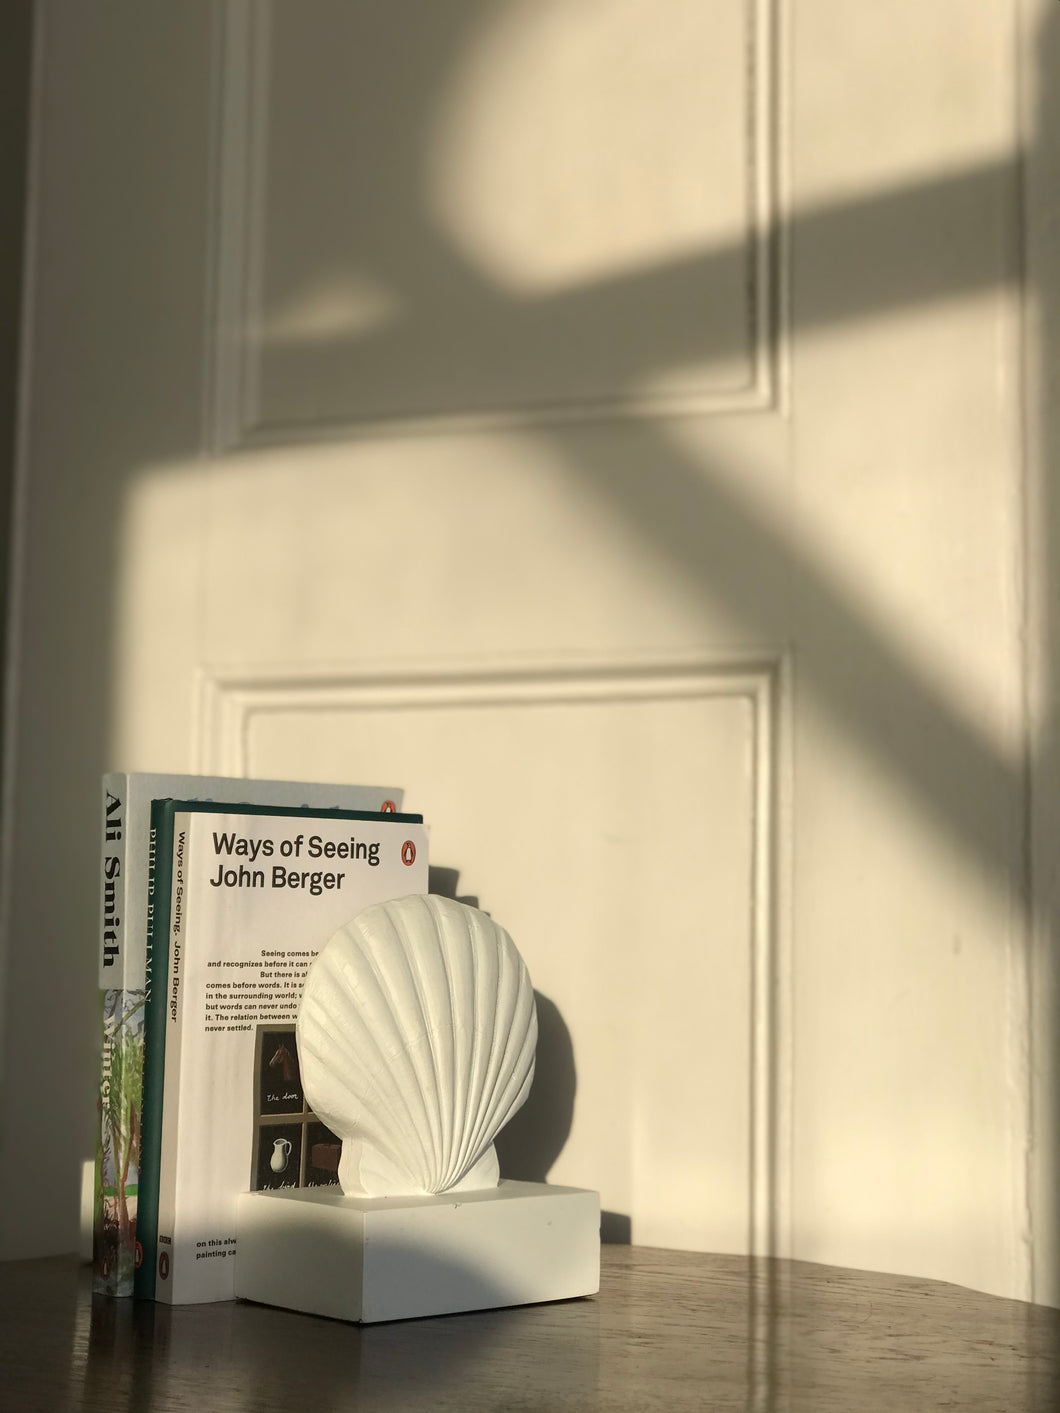 Seashell bookends